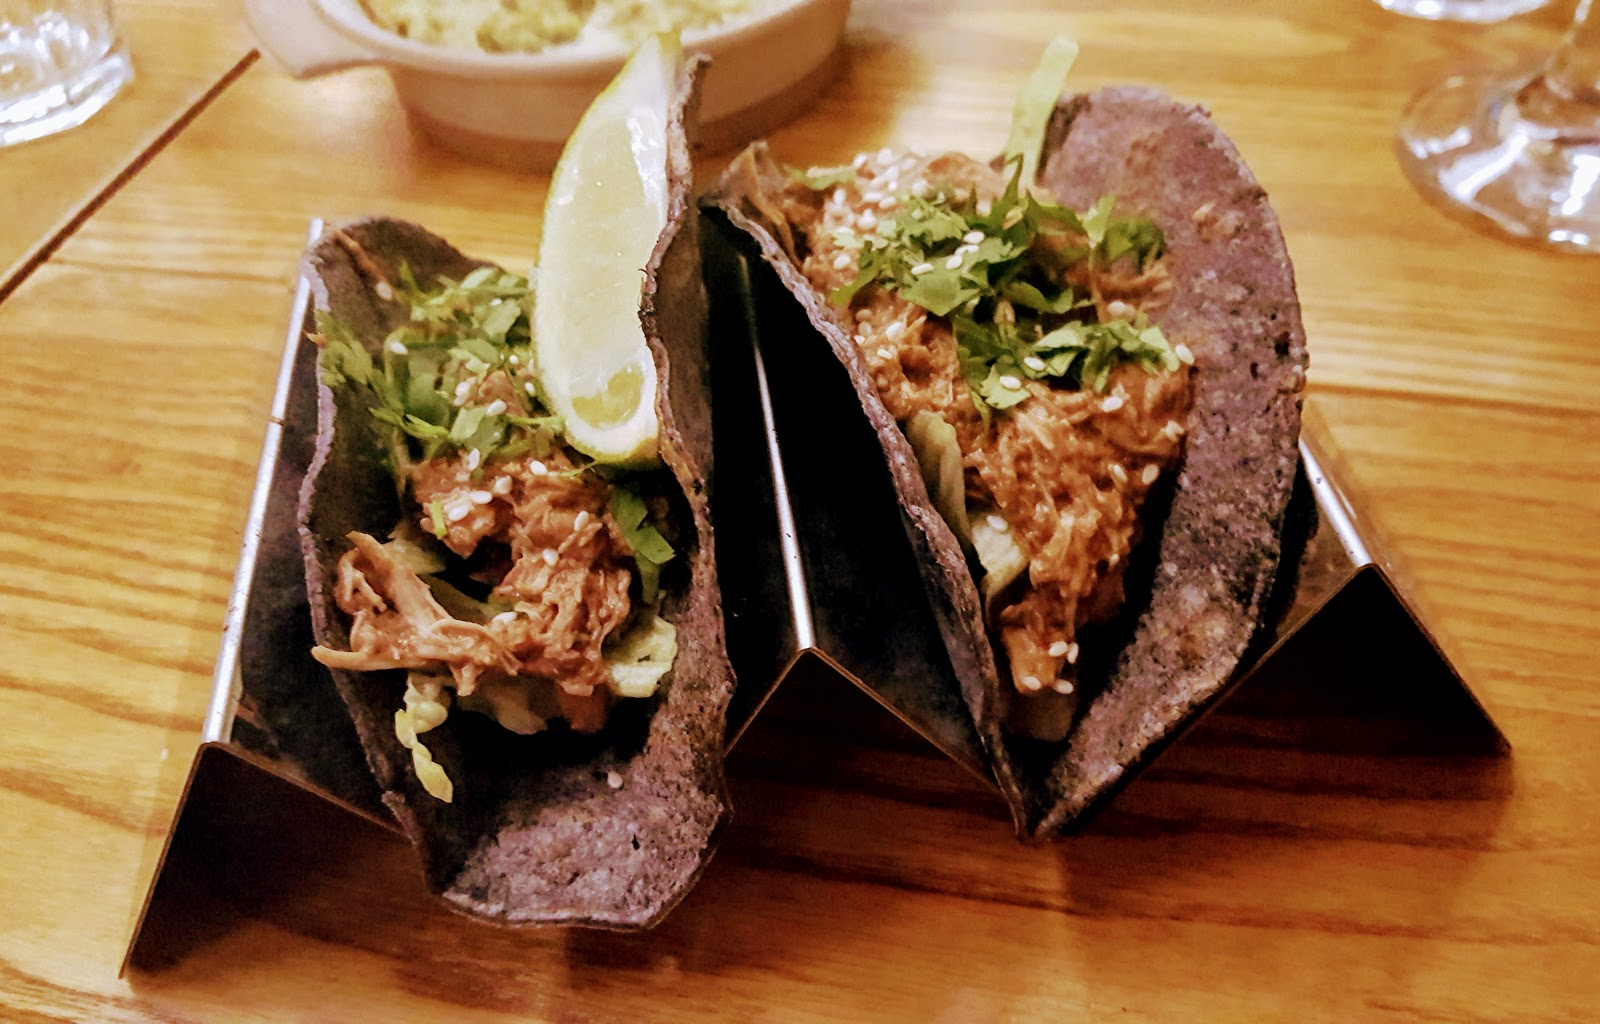 Bodega Leicester Review - mole chicken tacos